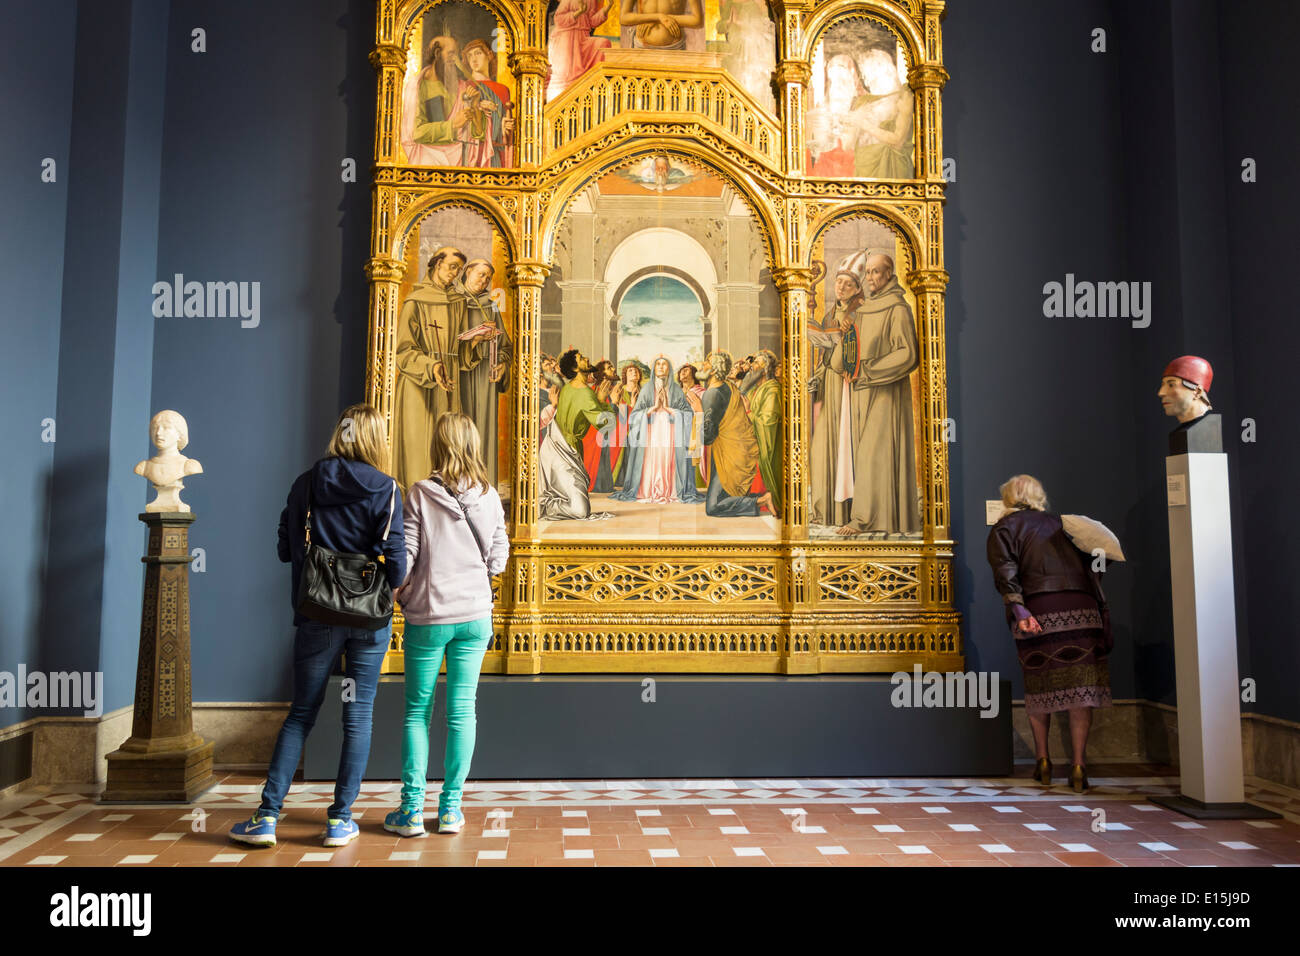 Two young girls and an older woman contemplating a painting in Bode museum in Berlin, Germany - Stock Image